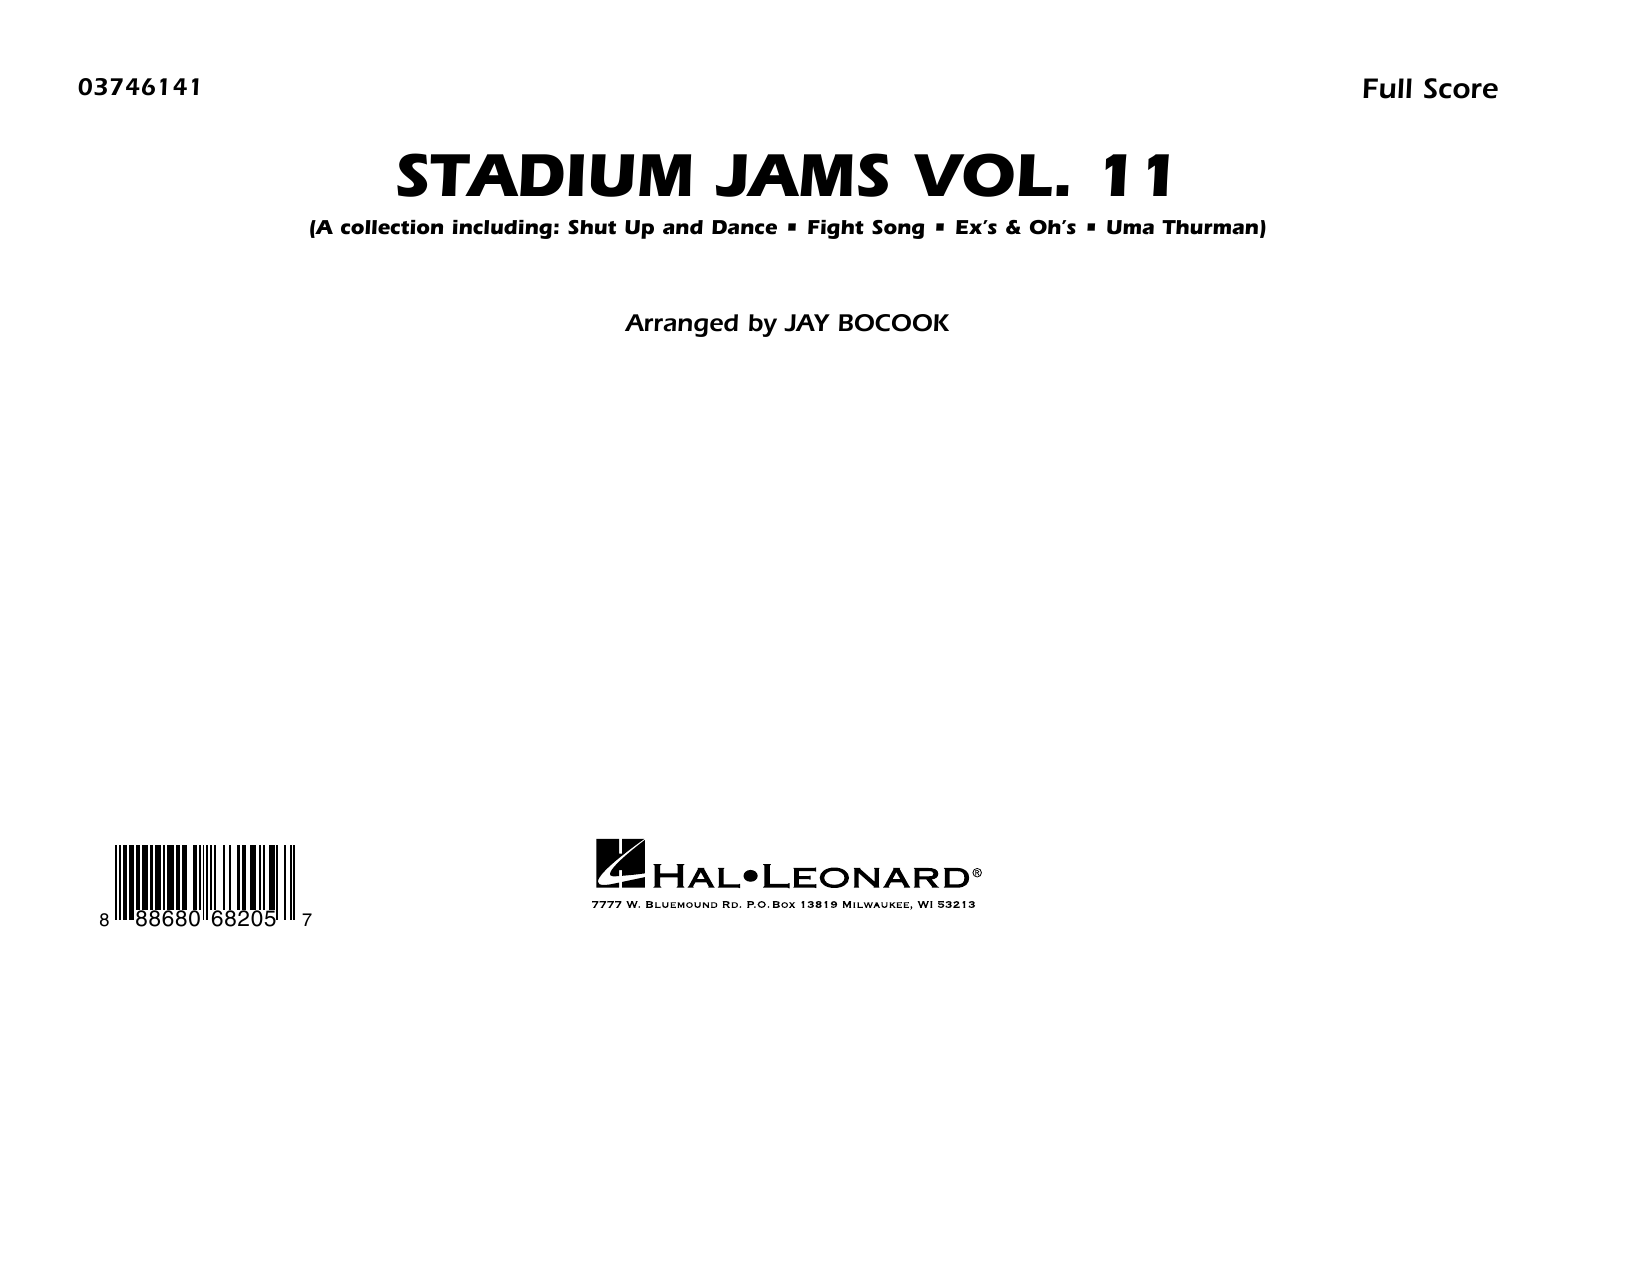 Stadium Jams Volume 11 - Conductor Score (Full Score) Digitale Noten